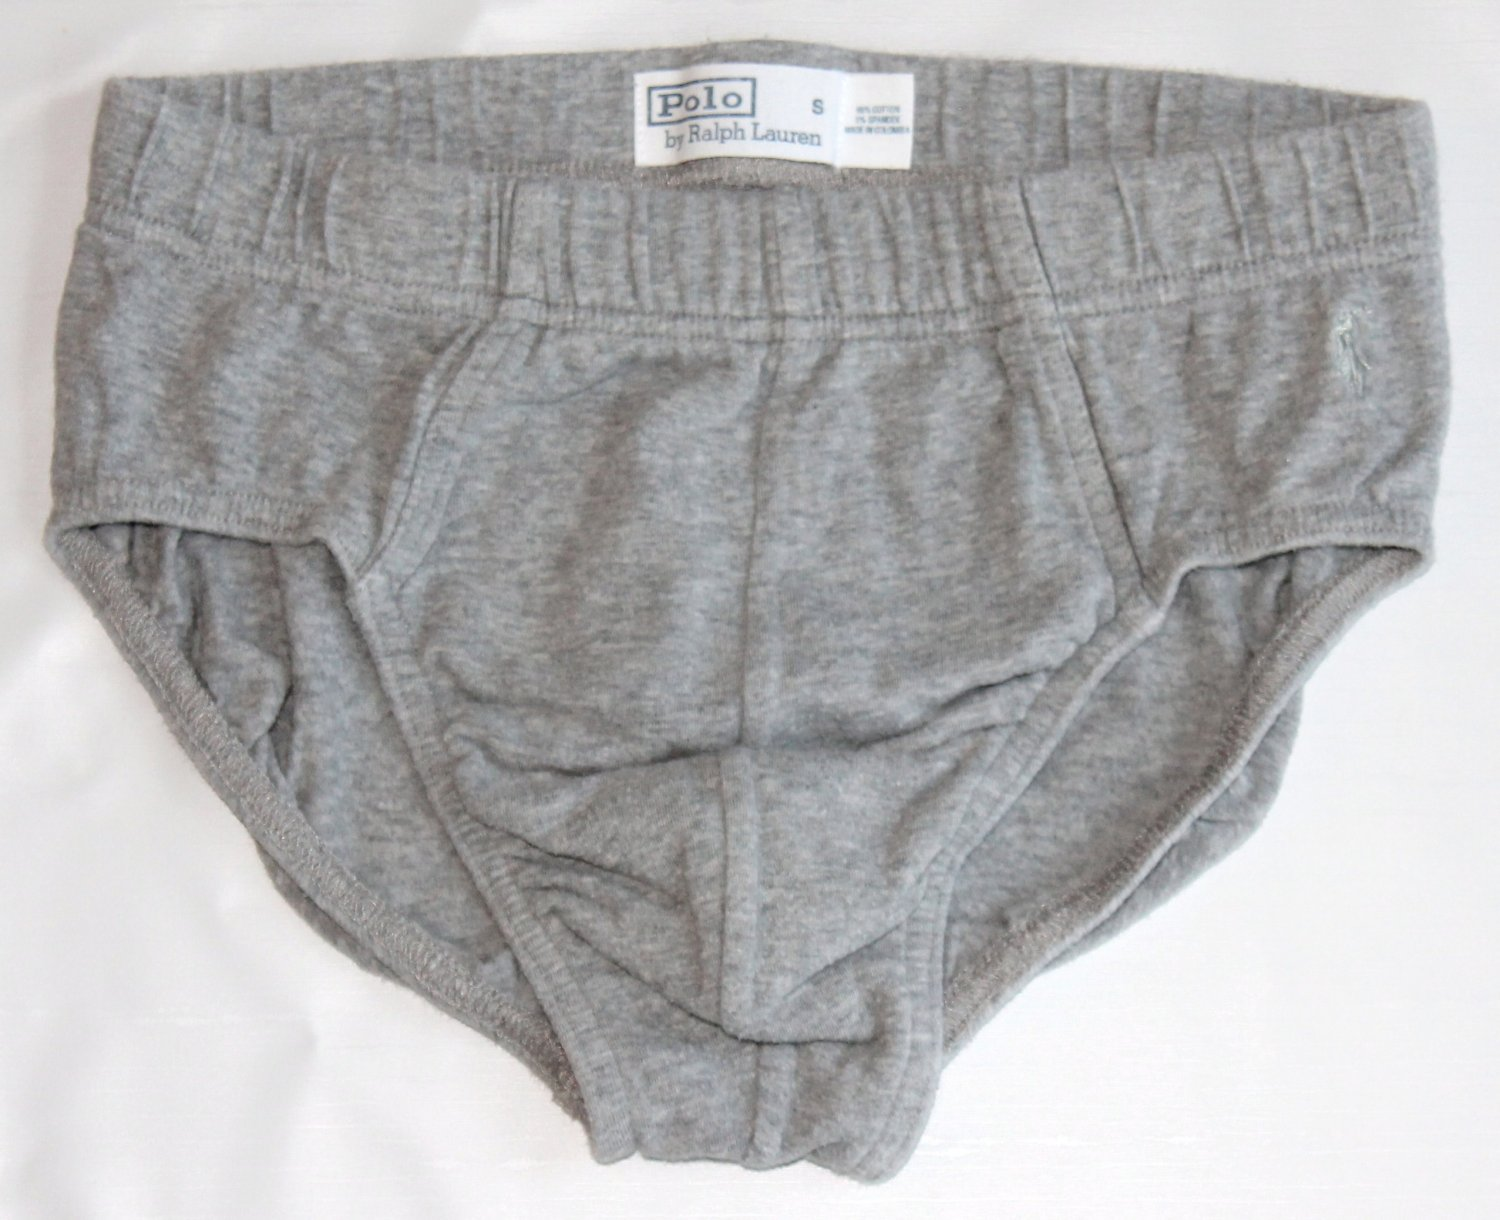 Polo Ralph Lauren Men's Bikini Brief Gray Small